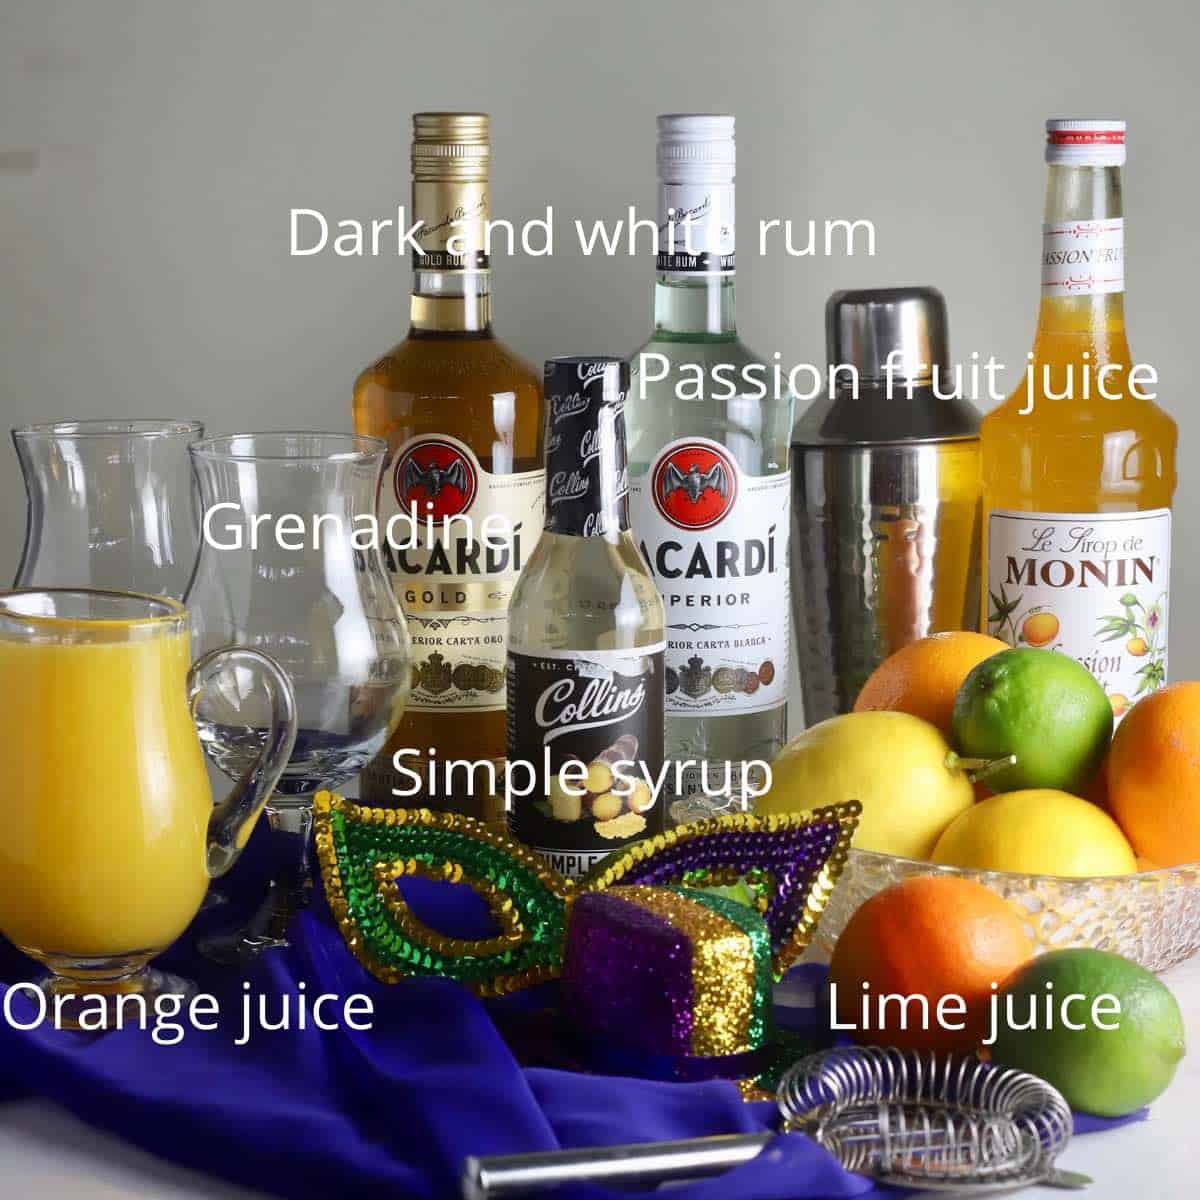 Rum and fruit juices to make hurricane drinks.